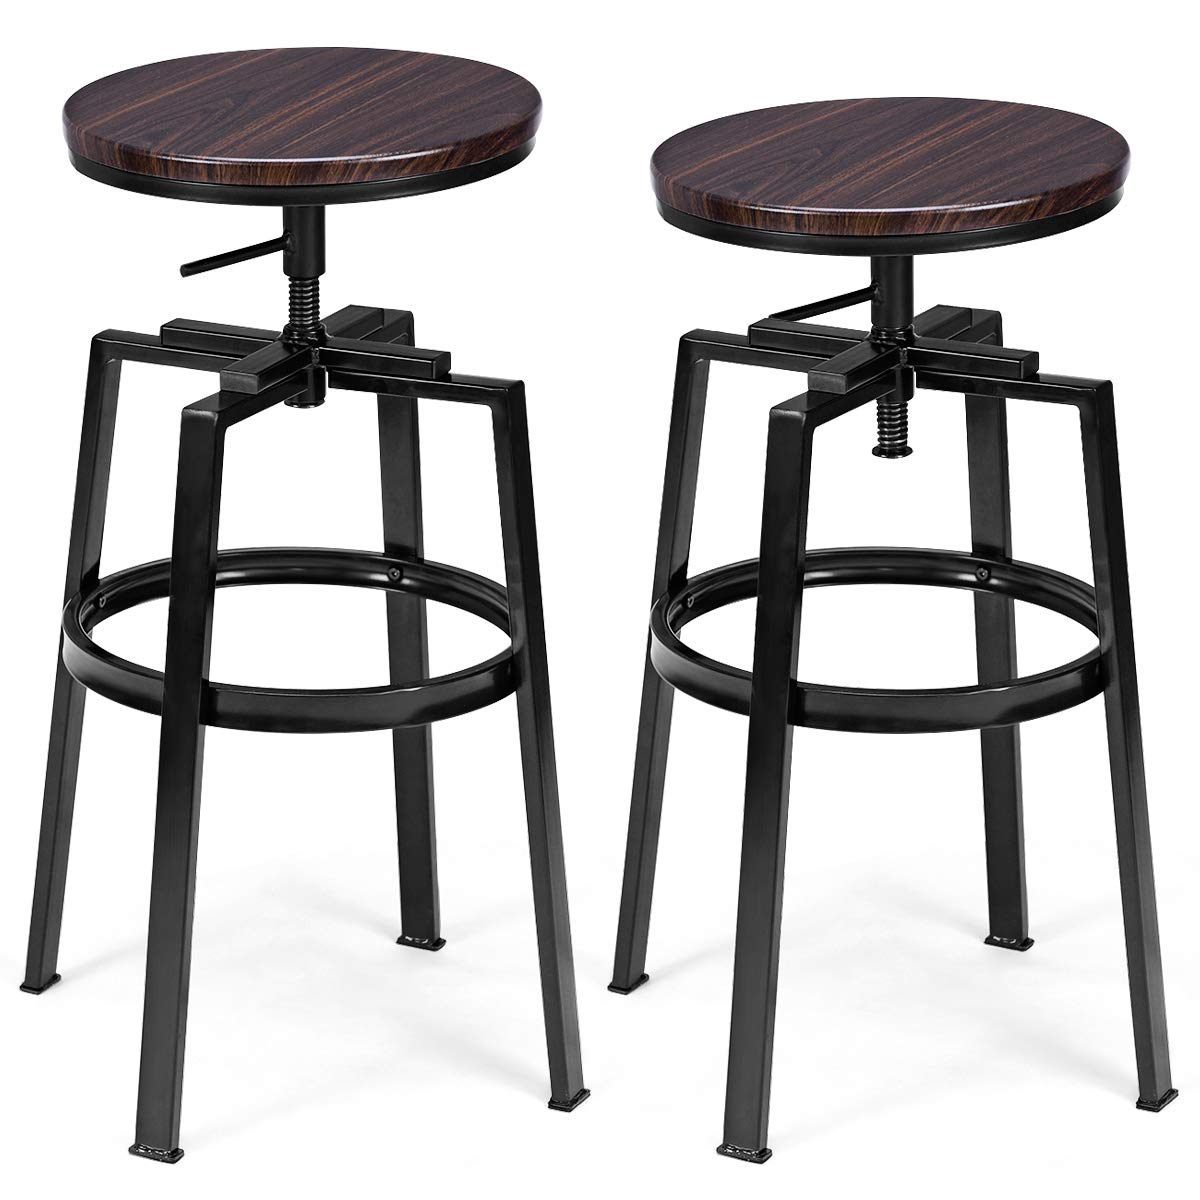 BOKKOLIK Industrial Swivel Bar Stool Counter Coffee Kitchen Dining Chair Backless Footrest Extra Height Adjustable 24.8-30